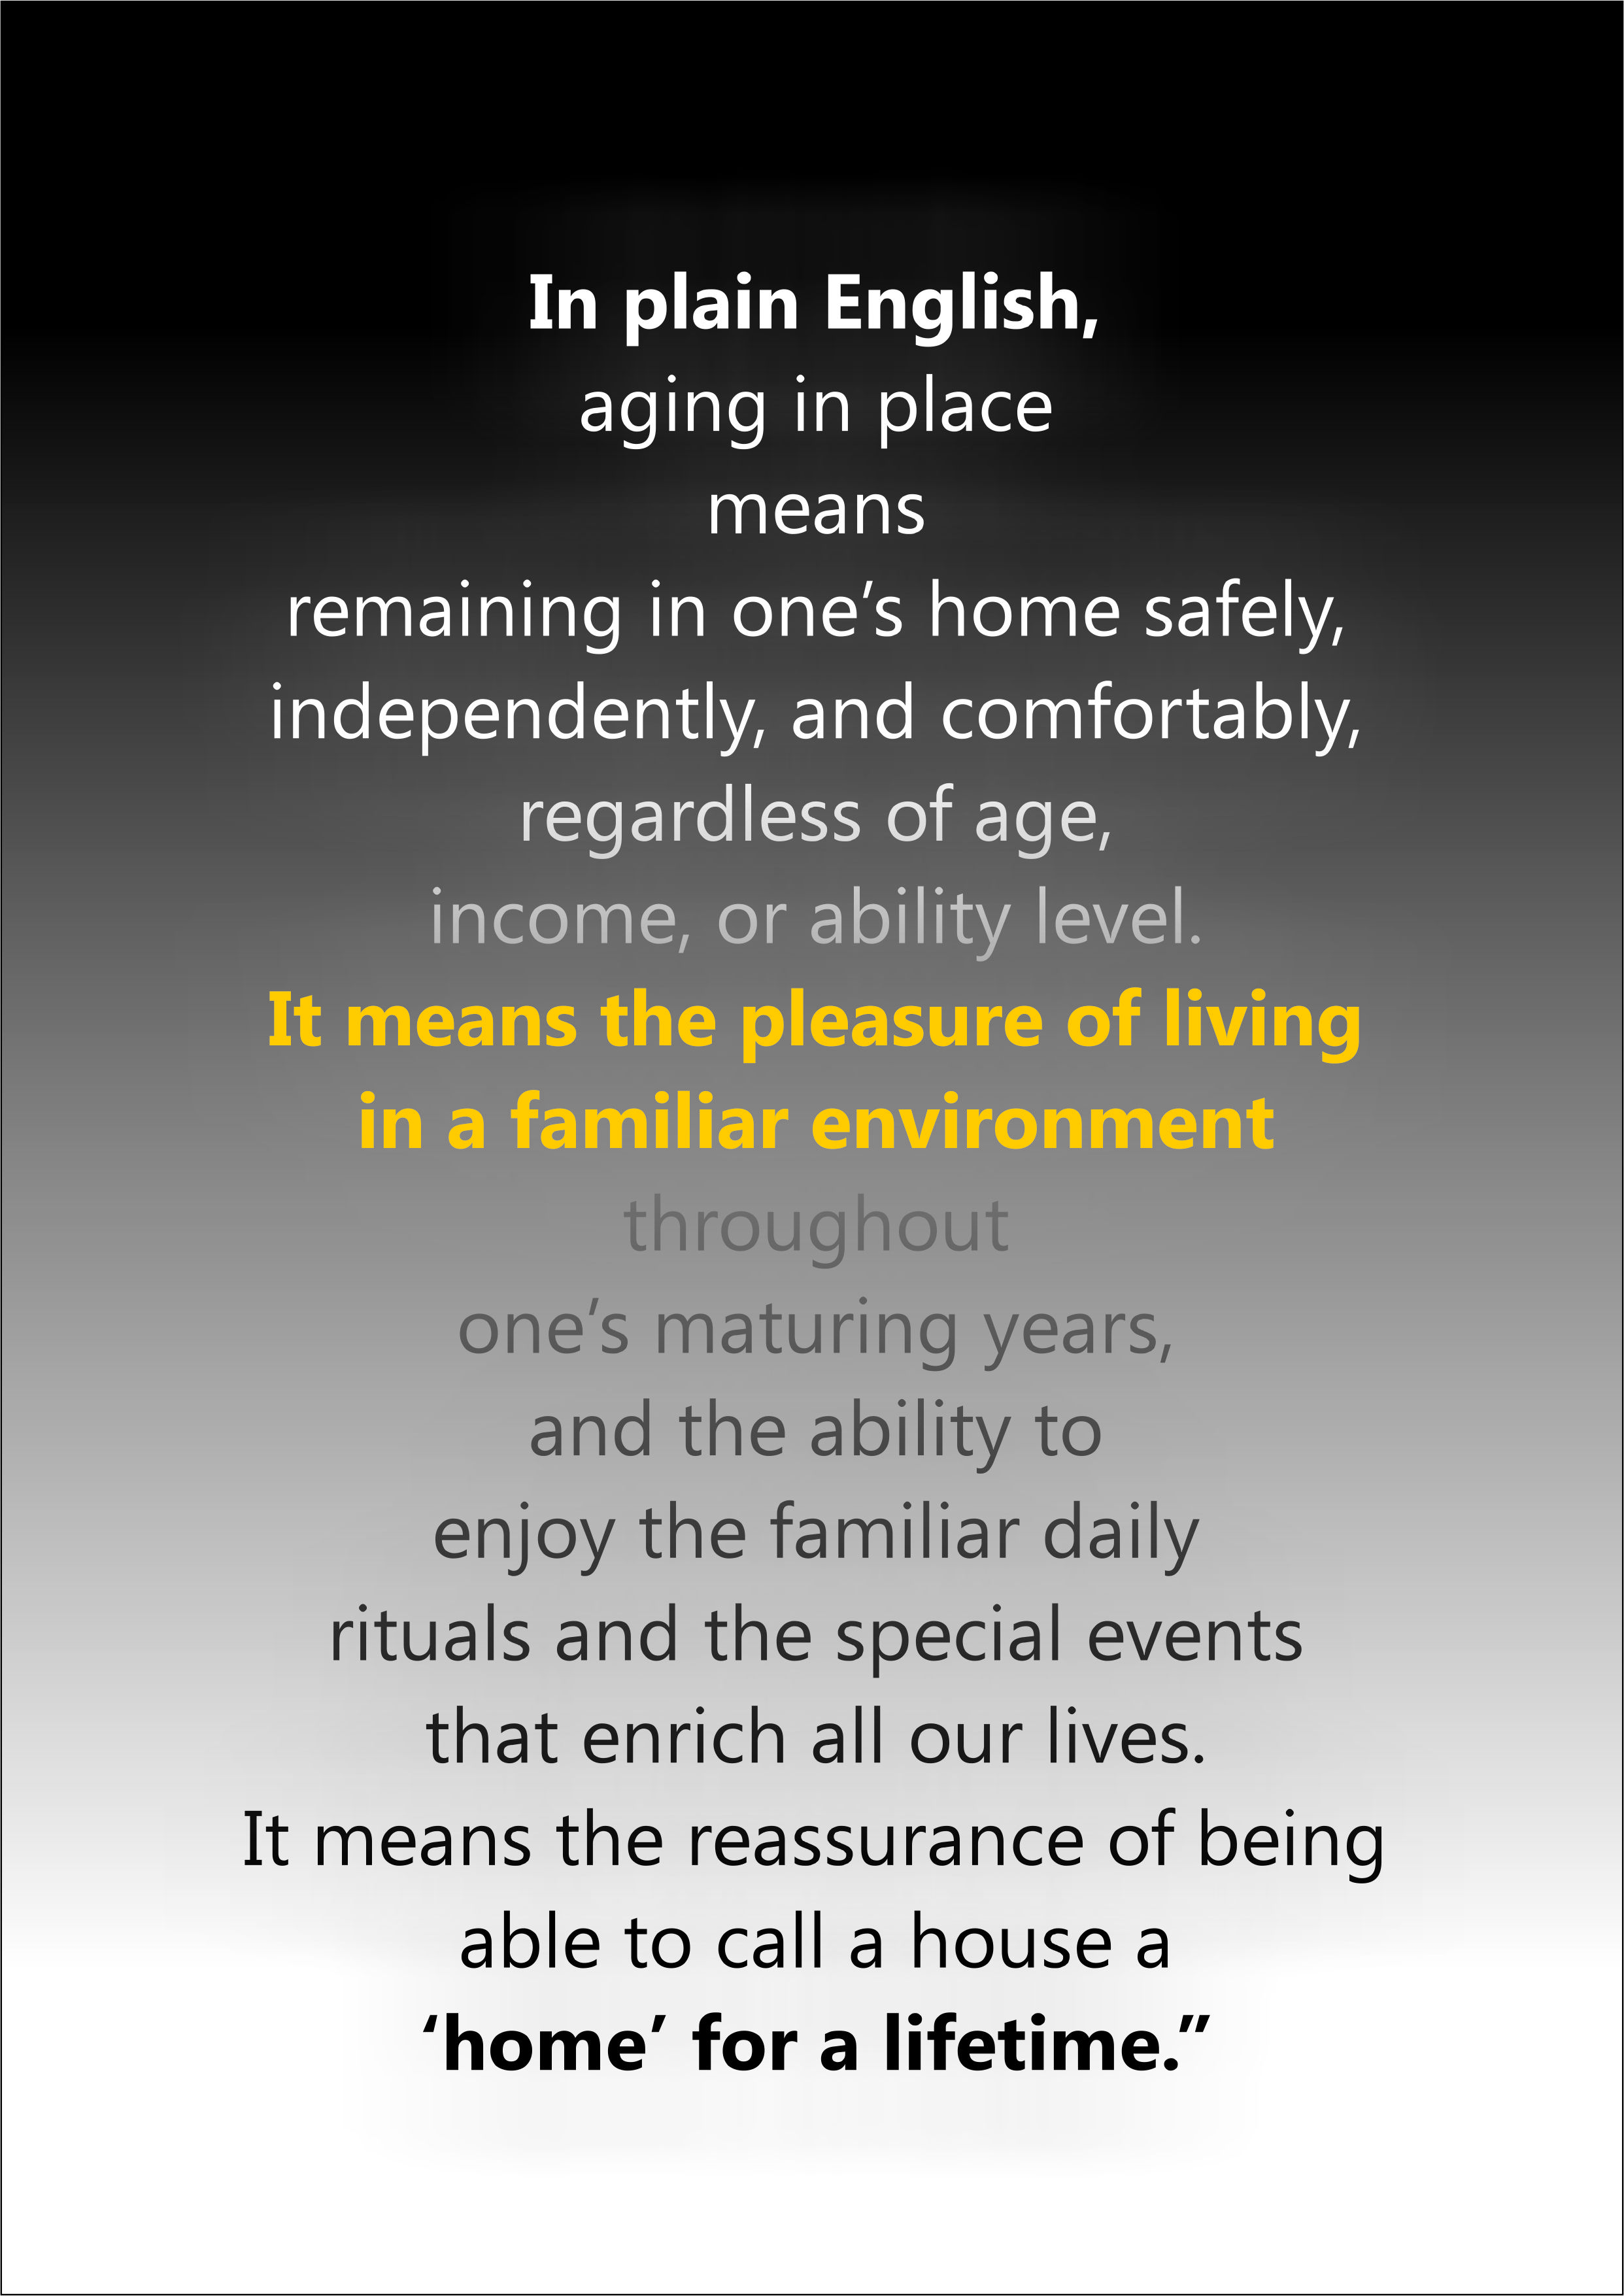 Goodenough definition of aging in place but it links to